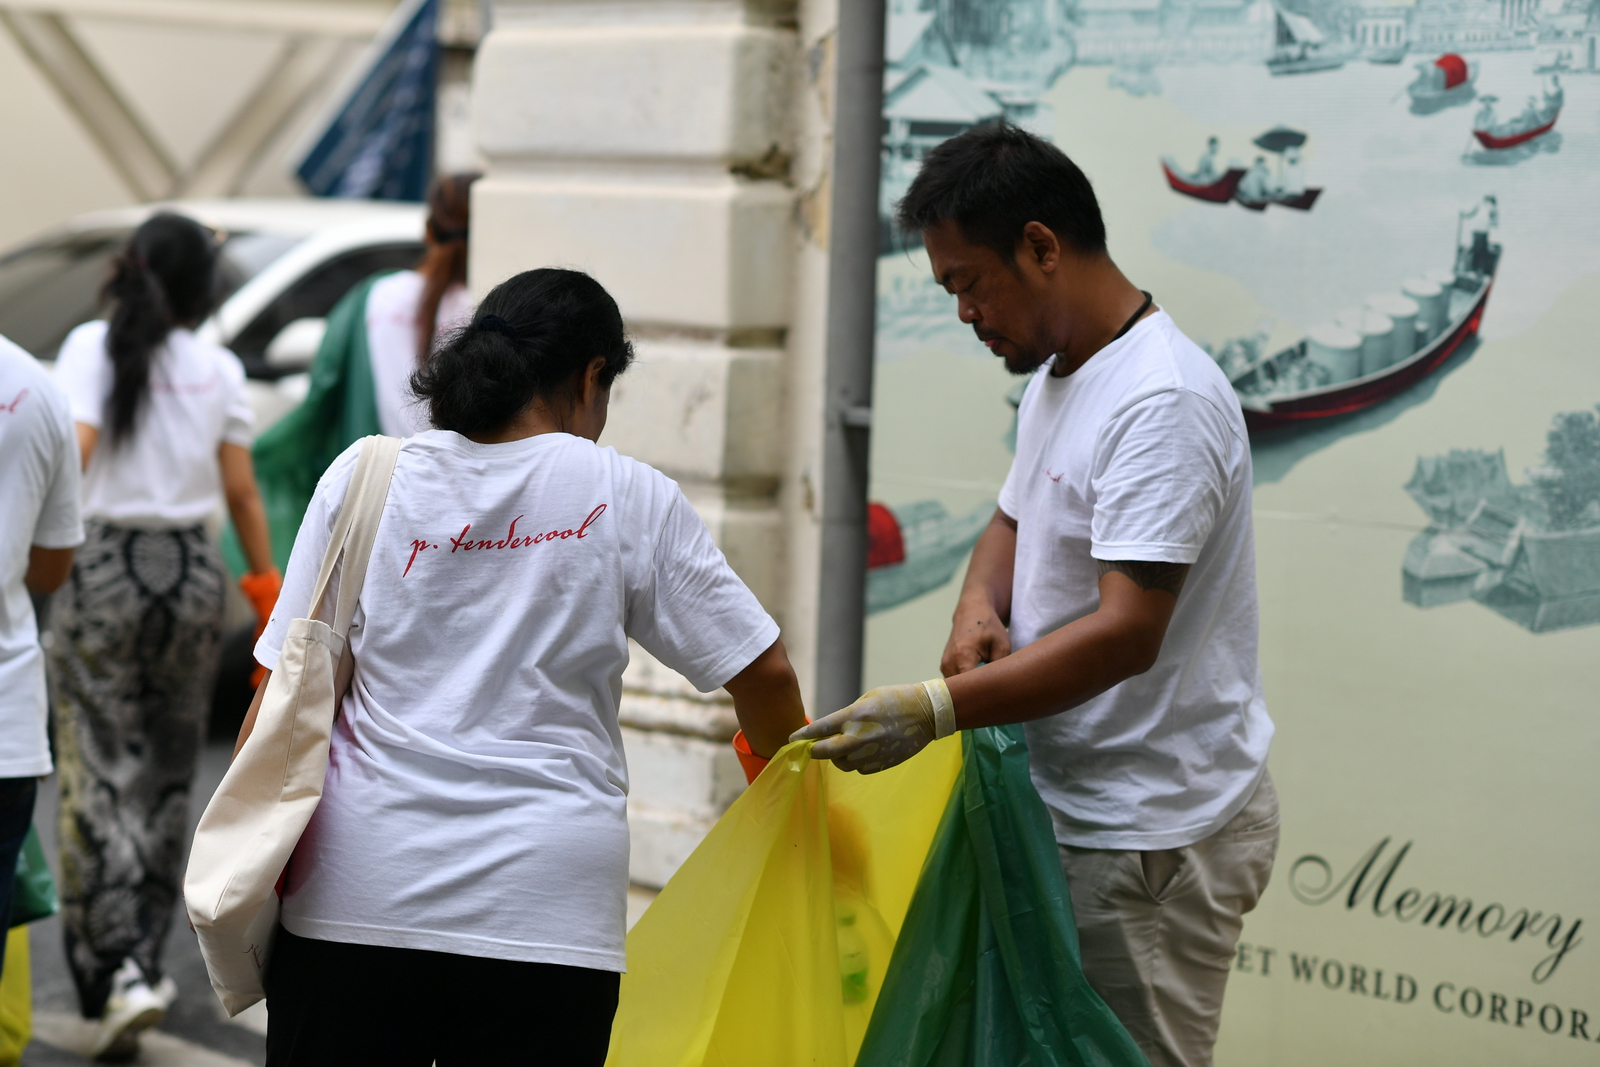 PTendercool-Event-Clean Up The World-190921-066